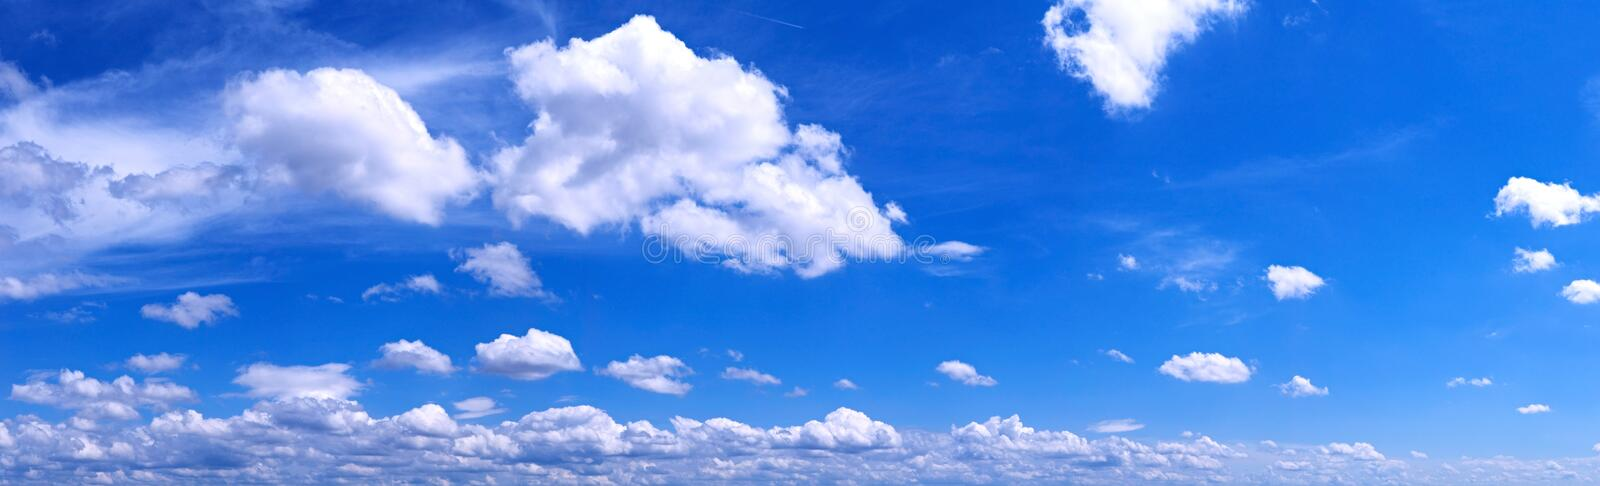 Download Clouds stock photo. Image of forecast, clouds, infinity - 5391080